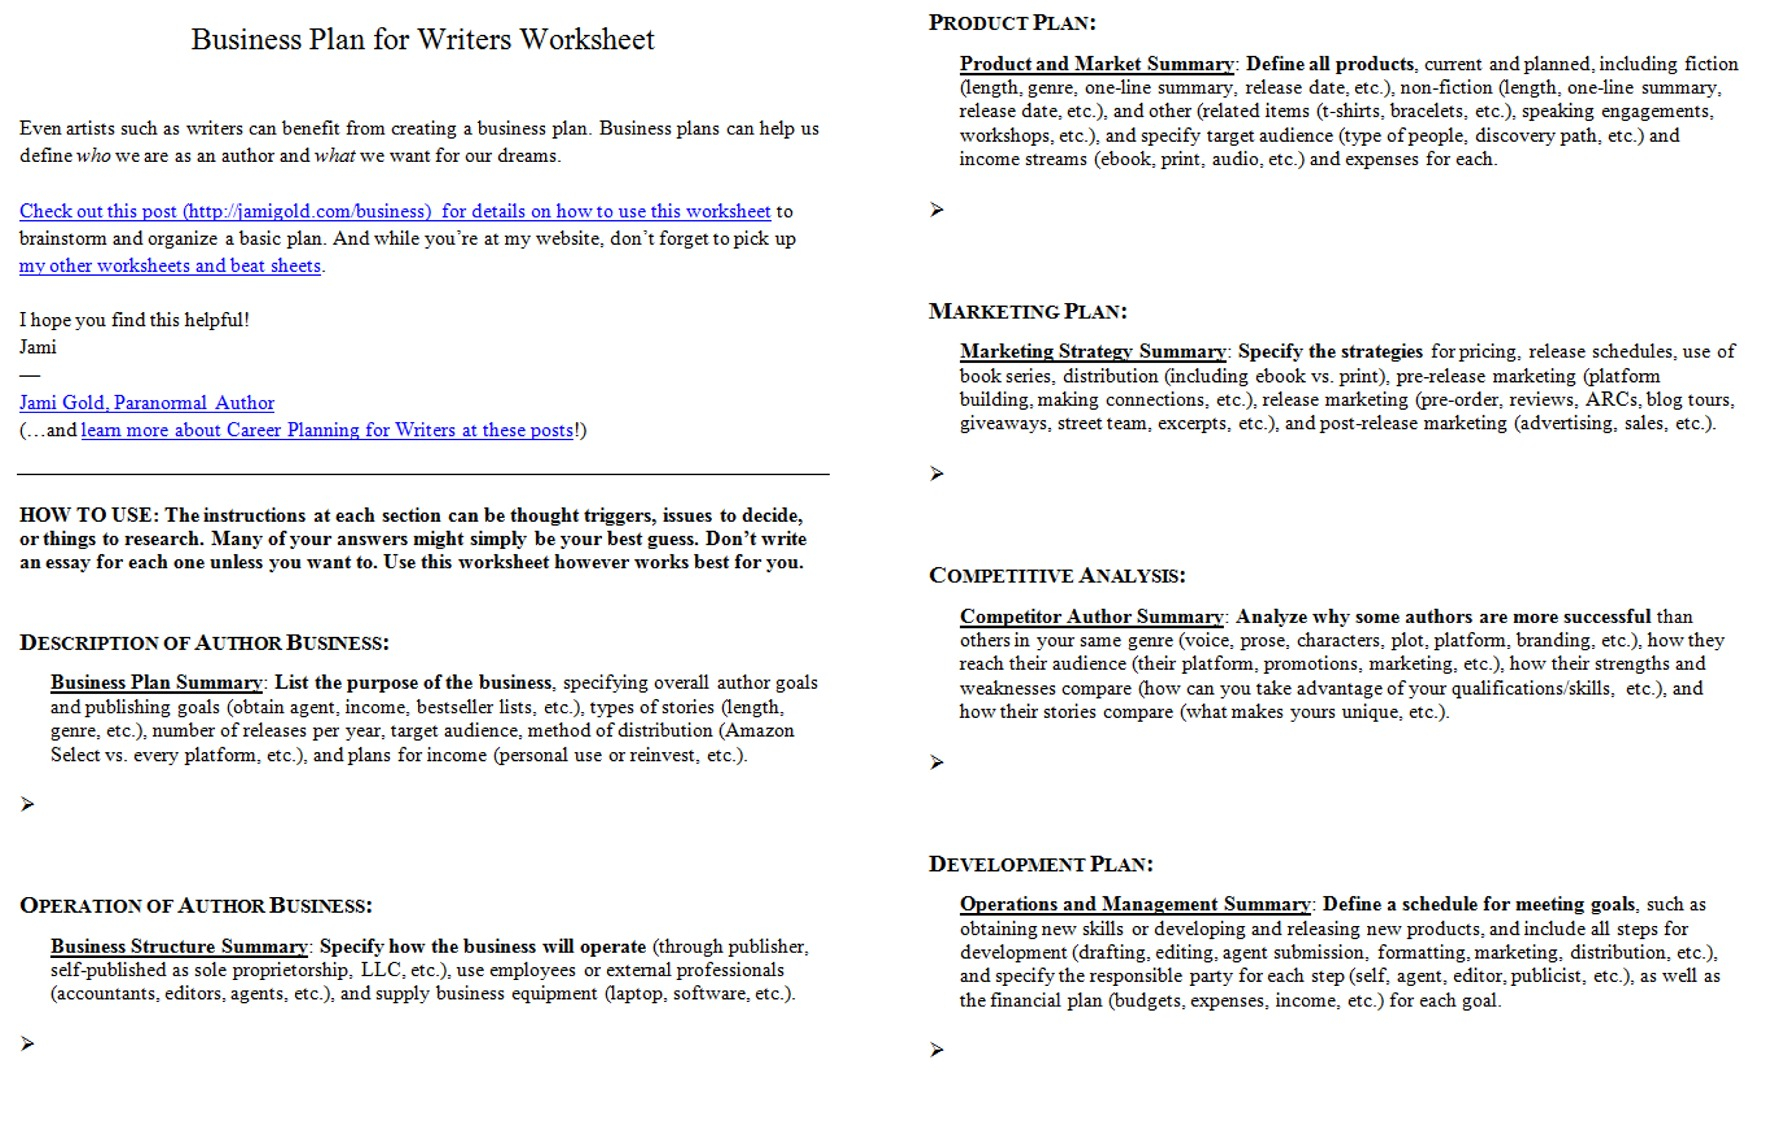 Proatmealus  Winsome Worksheets For Writers  Jami Gold Paranormal Author With Excellent Screen Shot Of Both Pages Of The Business Plan For Writers Worksheet With Attractive Verb Tense Worksheets Also Potential And Kinetic Energy Worksheet In Addition Stem And Leaf Plot Worksheet And Math Worksheets For Th Grade As Well As Subtracting Integers Worksheet Additionally Word Family Worksheets From Jamigoldcom With Proatmealus  Excellent Worksheets For Writers  Jami Gold Paranormal Author With Attractive Screen Shot Of Both Pages Of The Business Plan For Writers Worksheet And Winsome Verb Tense Worksheets Also Potential And Kinetic Energy Worksheet In Addition Stem And Leaf Plot Worksheet From Jamigoldcom